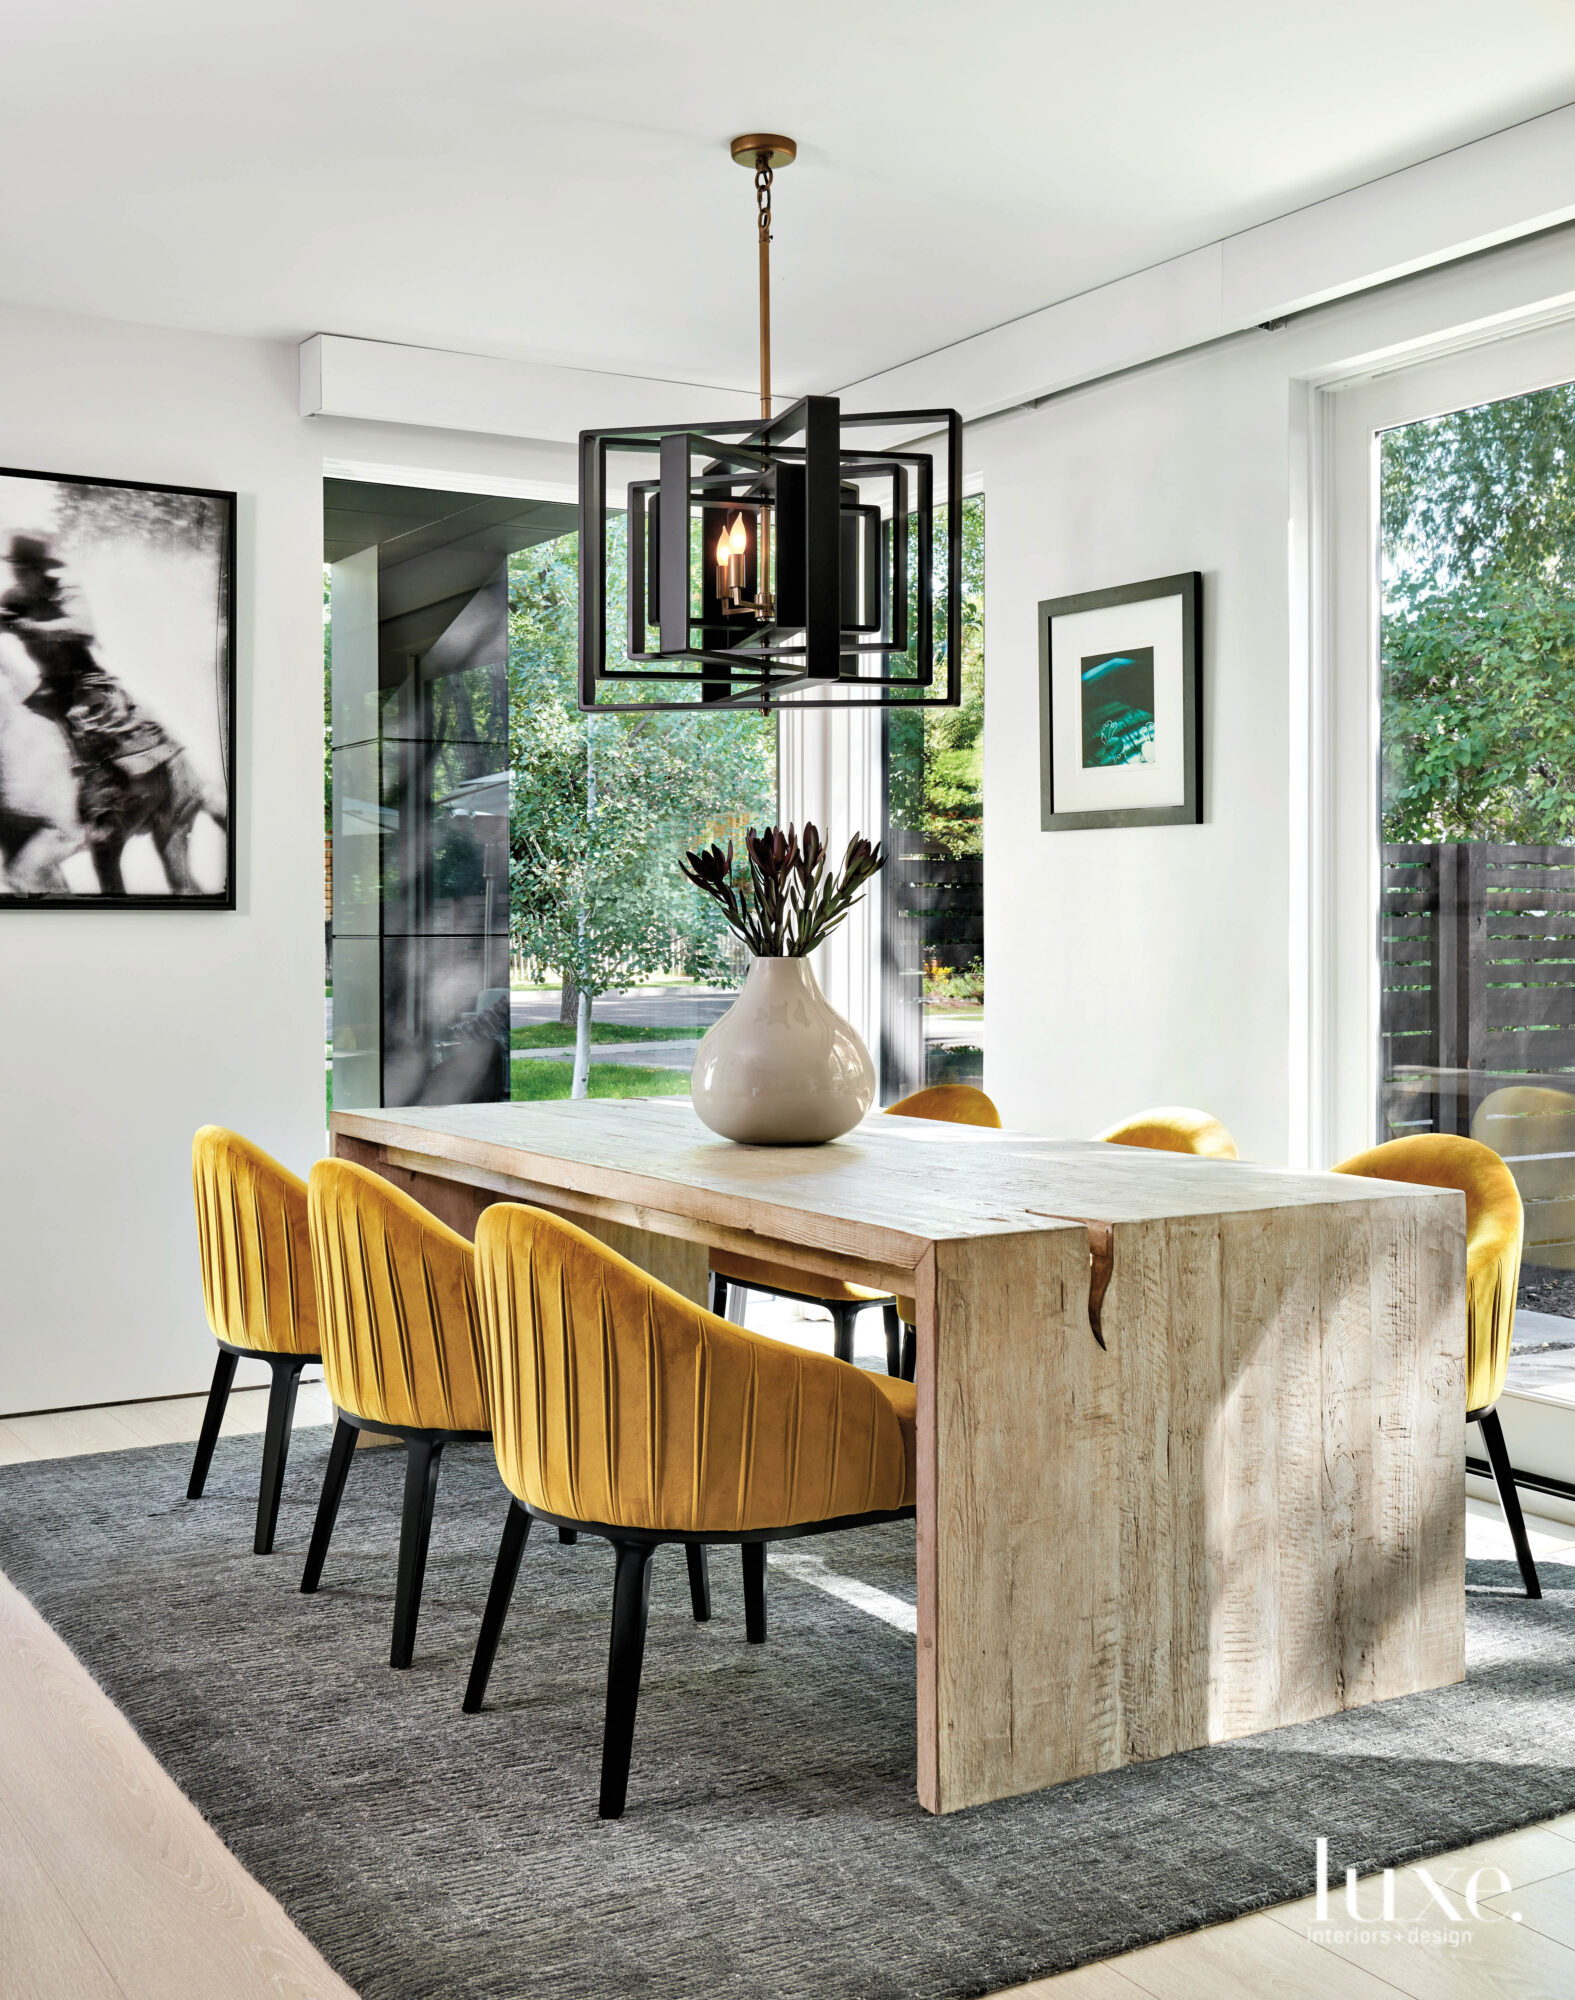 A dining room features mustard-colored chairs and a modern light fixture.